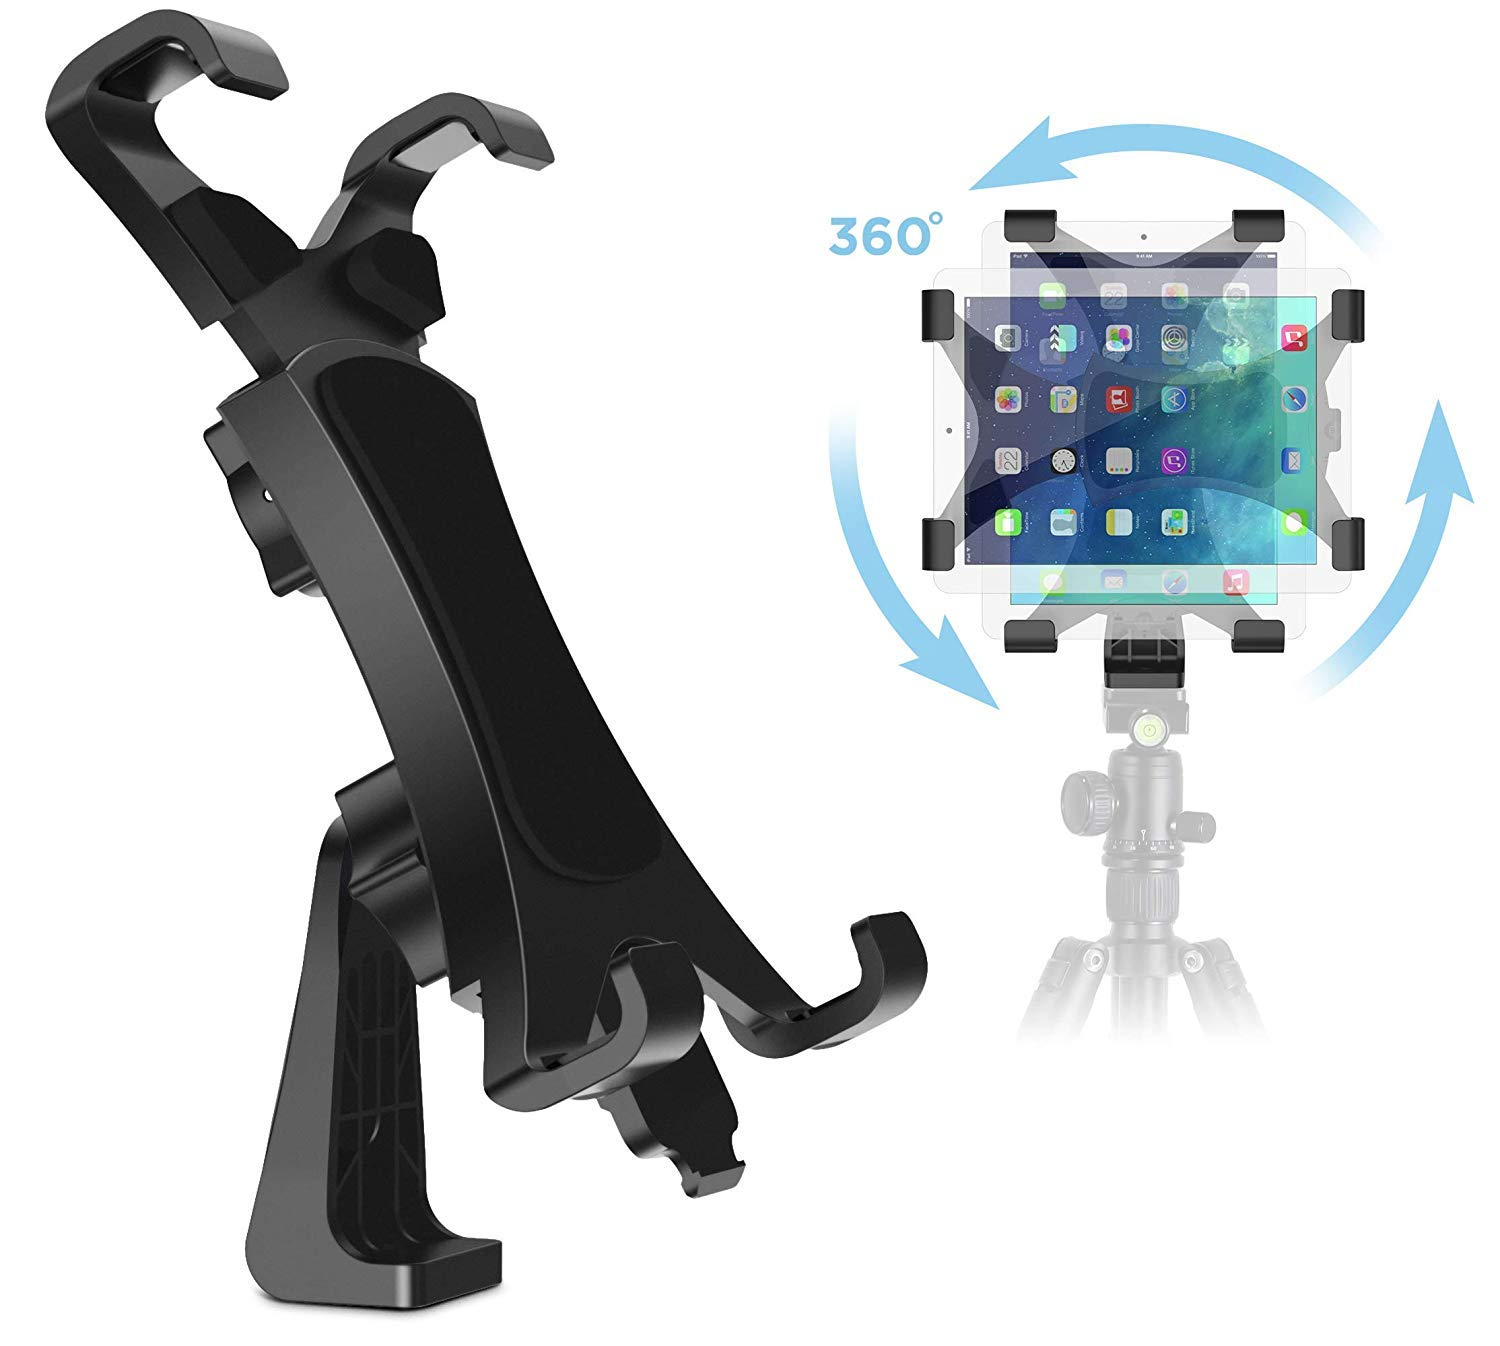 IPOW 360 Degree Rotatable Break-Resistant iPad Tripod Mount Adapter, Universal Tablet Clamp Holder Fits Ipad Air, Pro, Mini, Microsoft Surface, Nexus, for Tripod Monopod, Selfie Stick,Tabletop Stand by IPOW